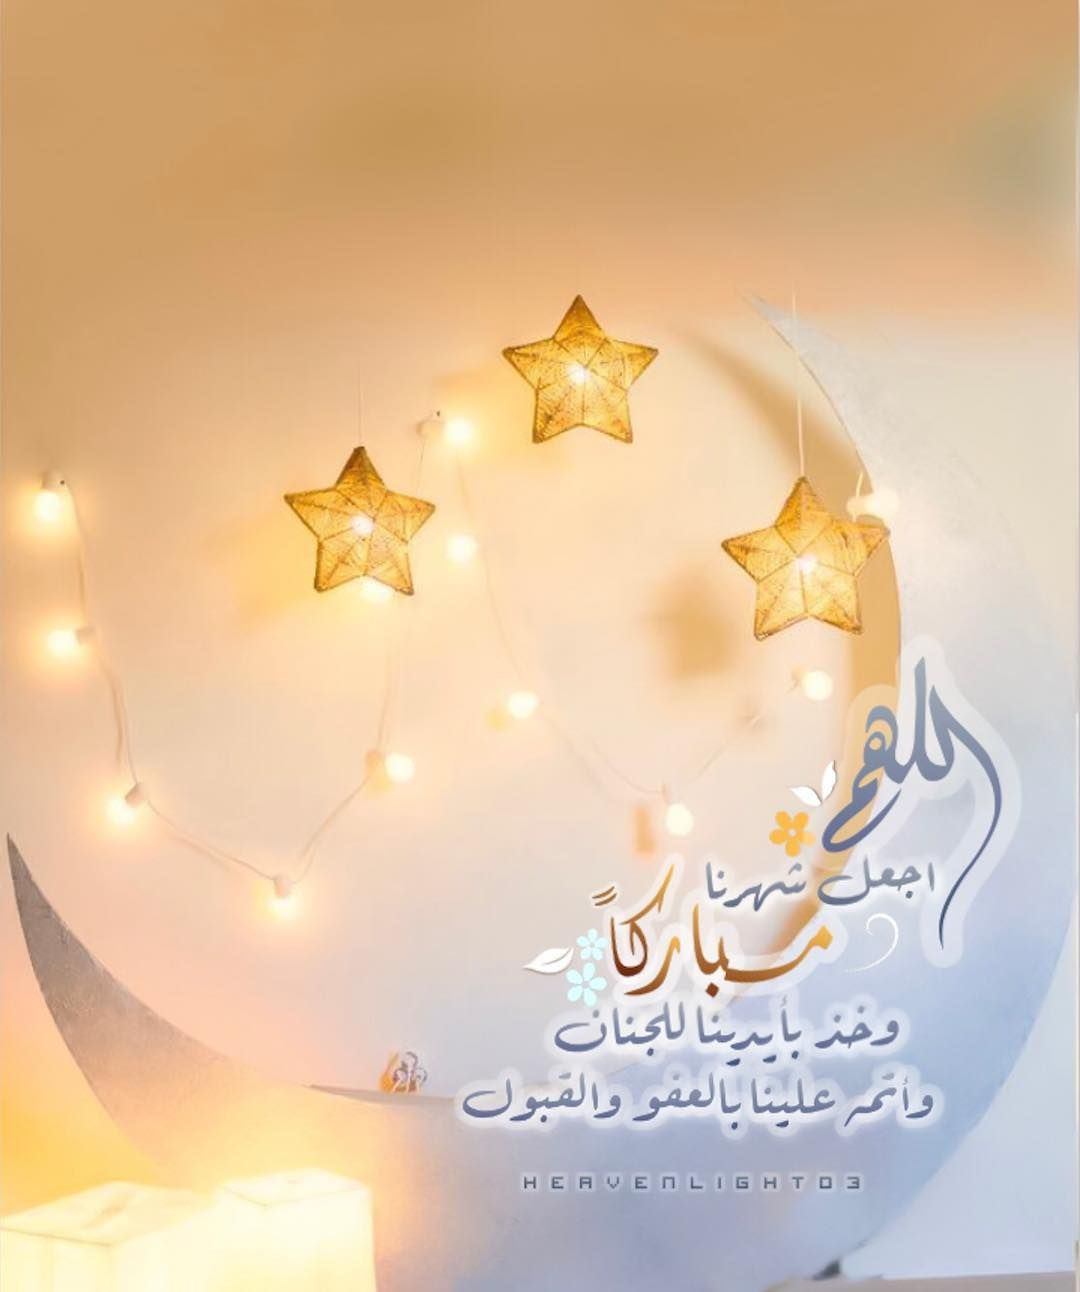 630 Likes 28 Comments Um Rakan Heavenlight03 On Instagram اسق قلوب الصابرين فرحا يا الله Ramadan Decorations Muslim Ramadan Ramadan Kareem